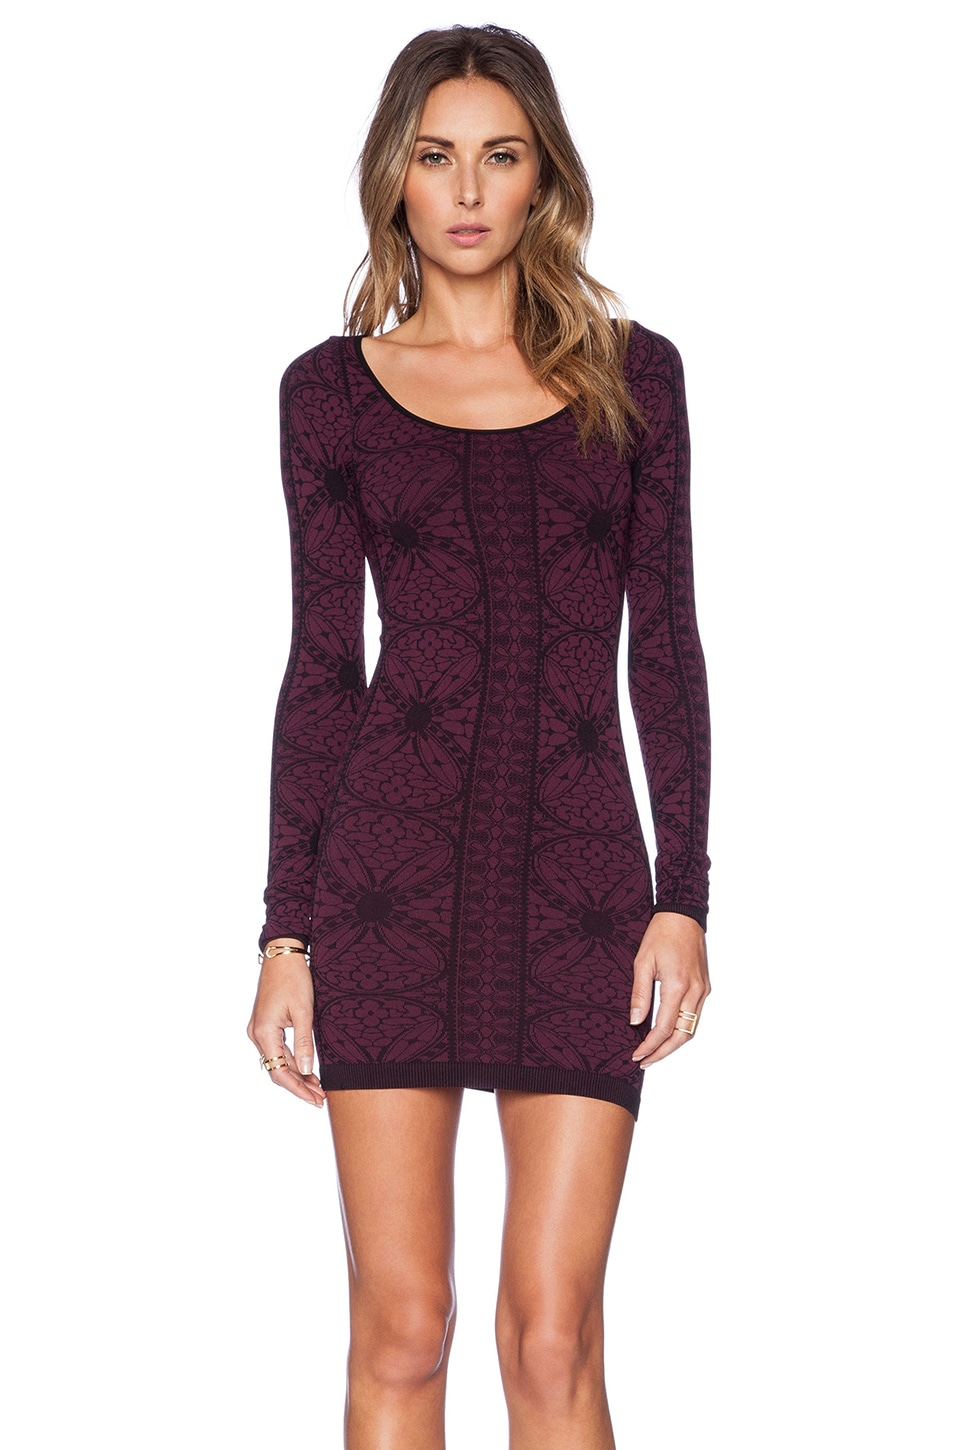 Free People Printed Long Sleeve Bodycon in Very Berry Combo | REVOLVE